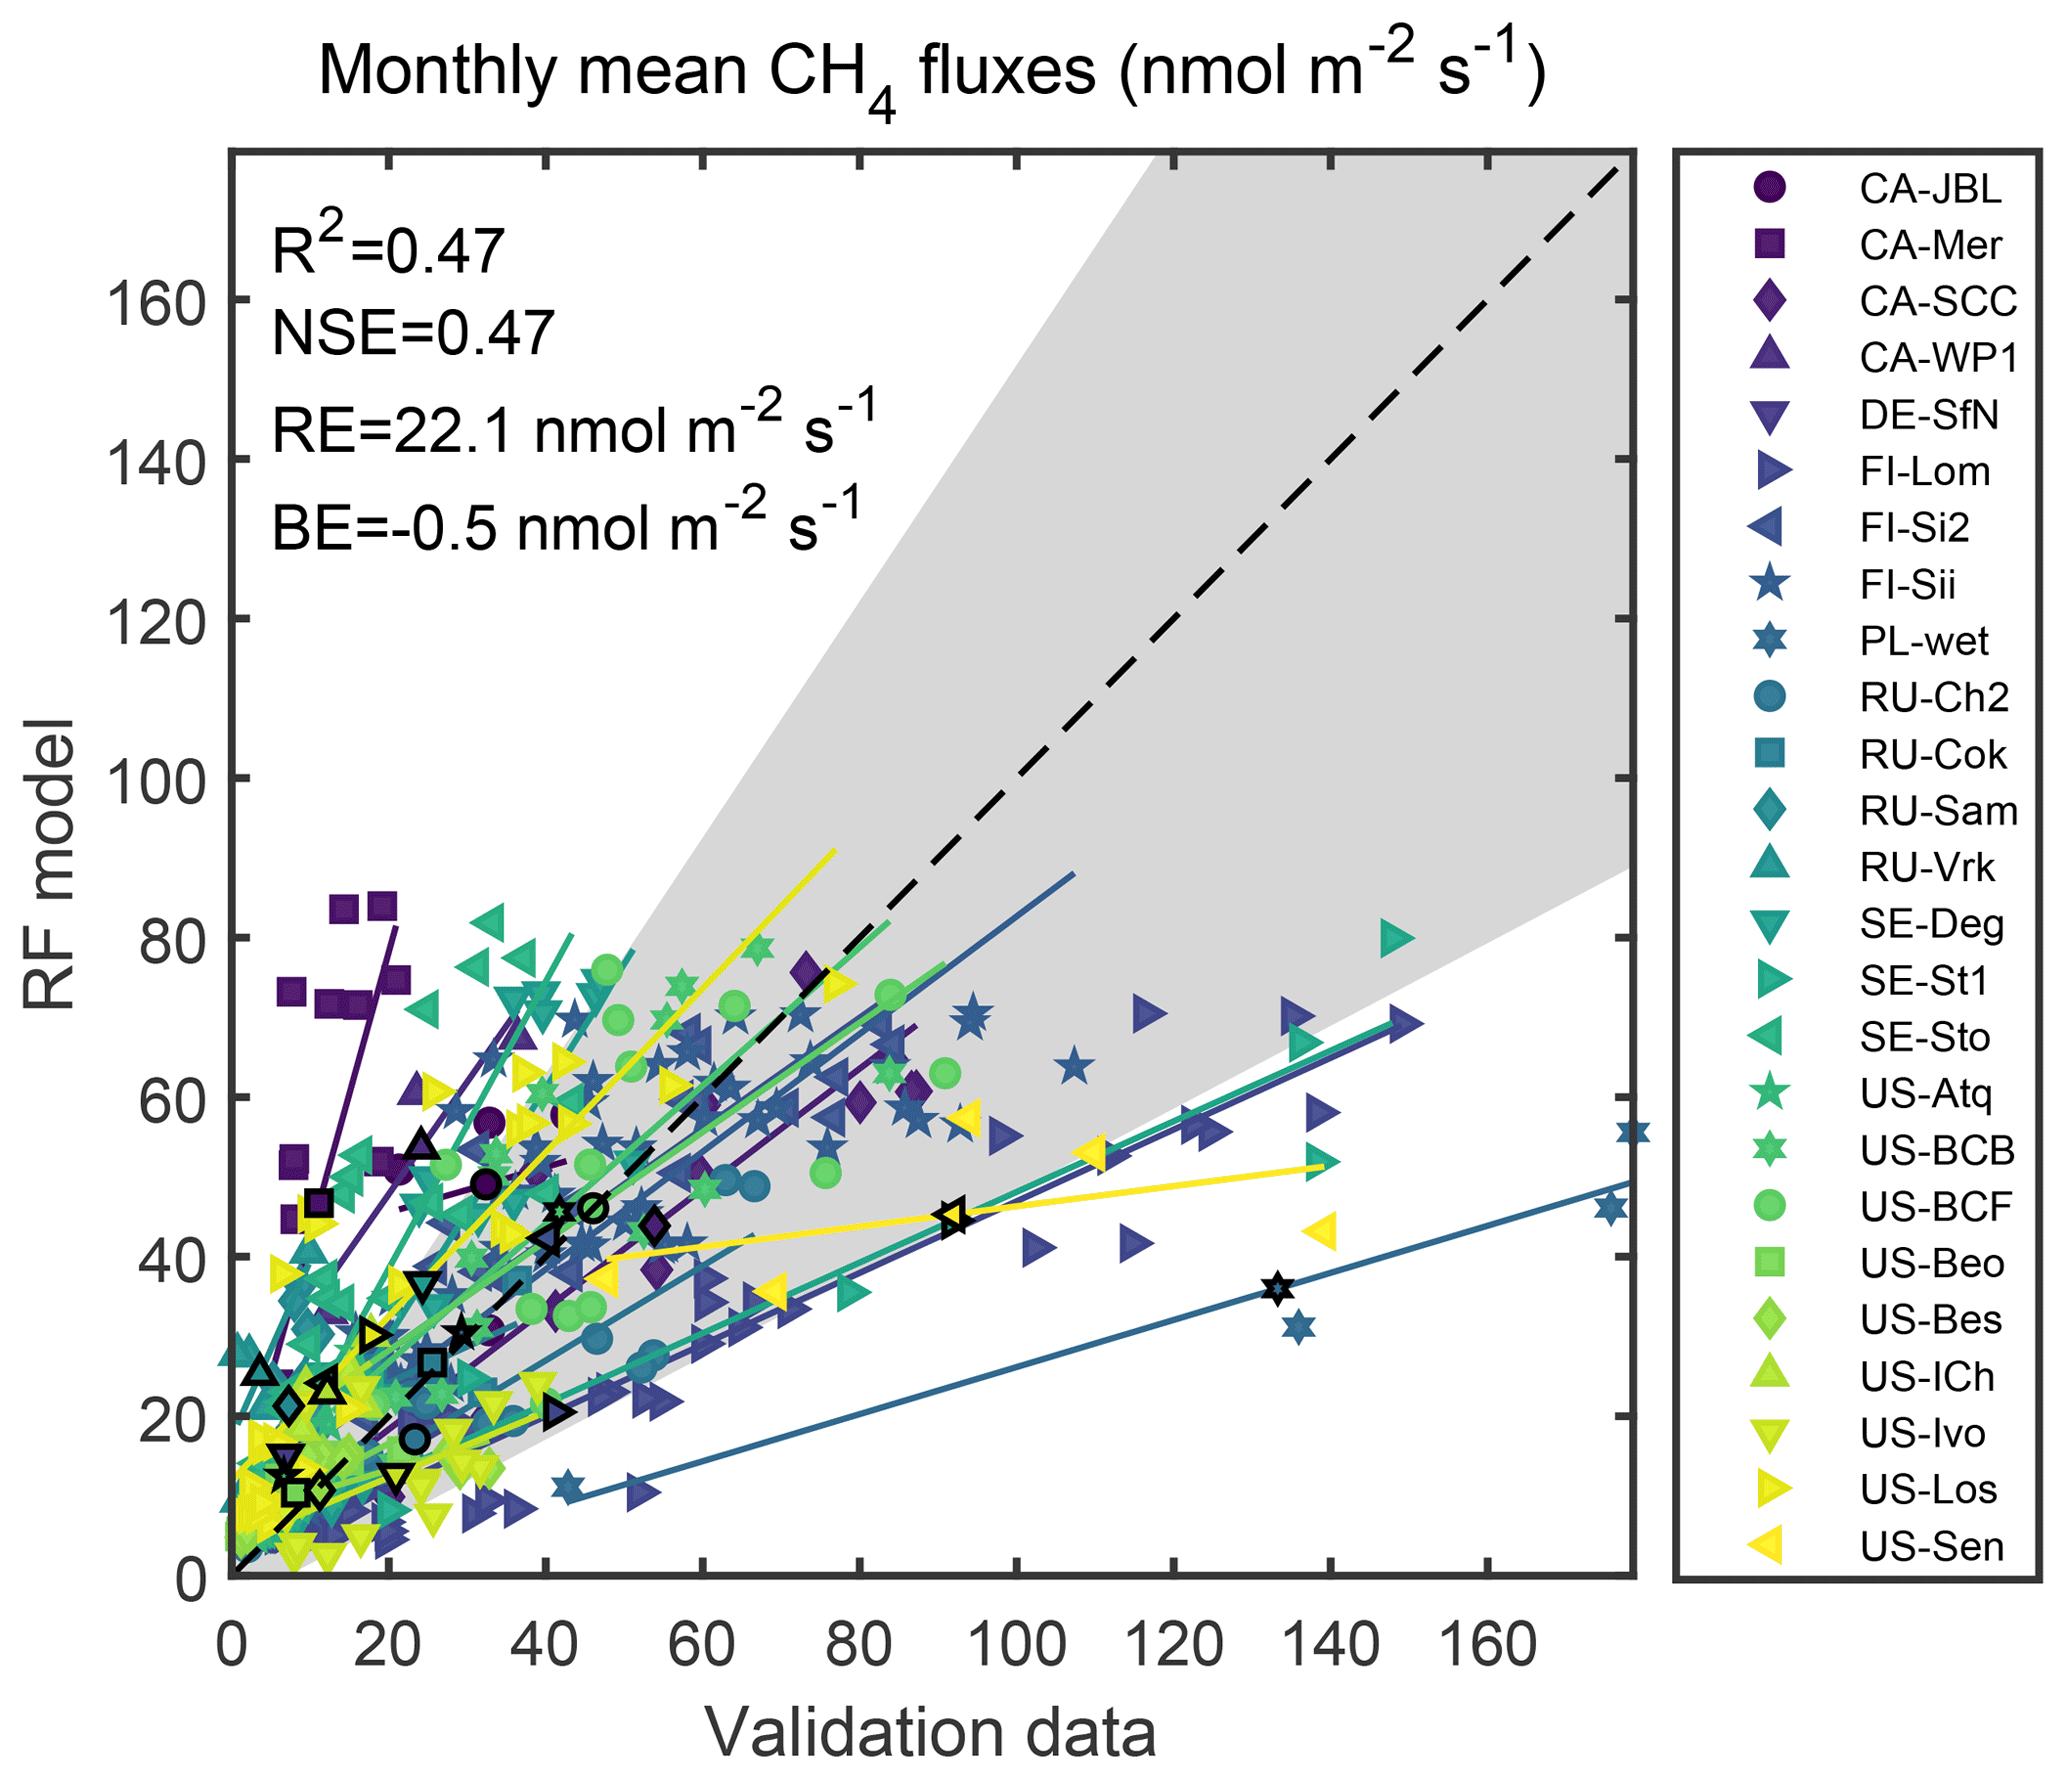 ESSD - Monthly gridded data product of northern wetland